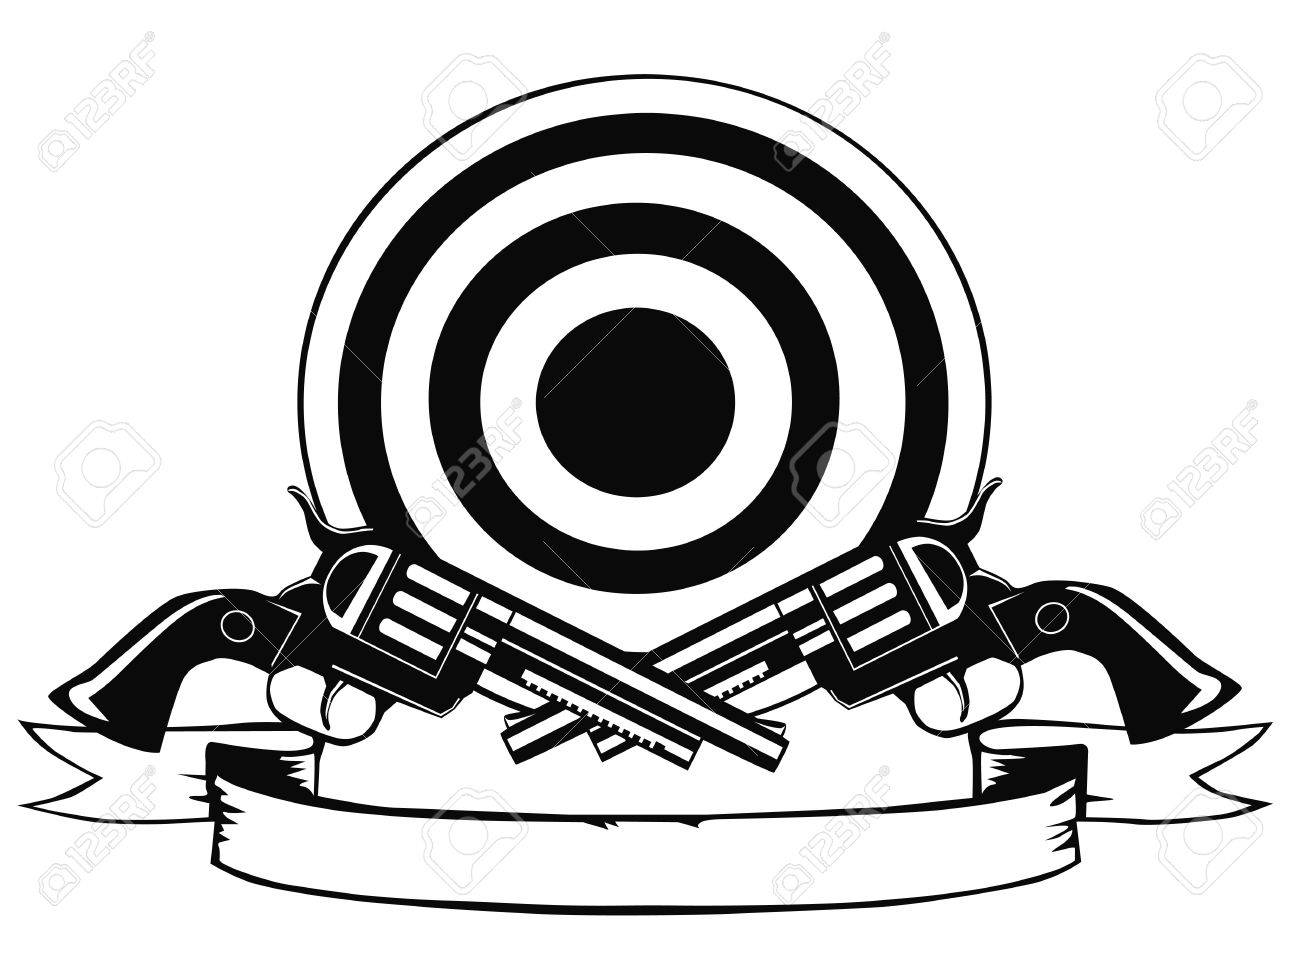 Pistols and target Stock Vector - 14777163